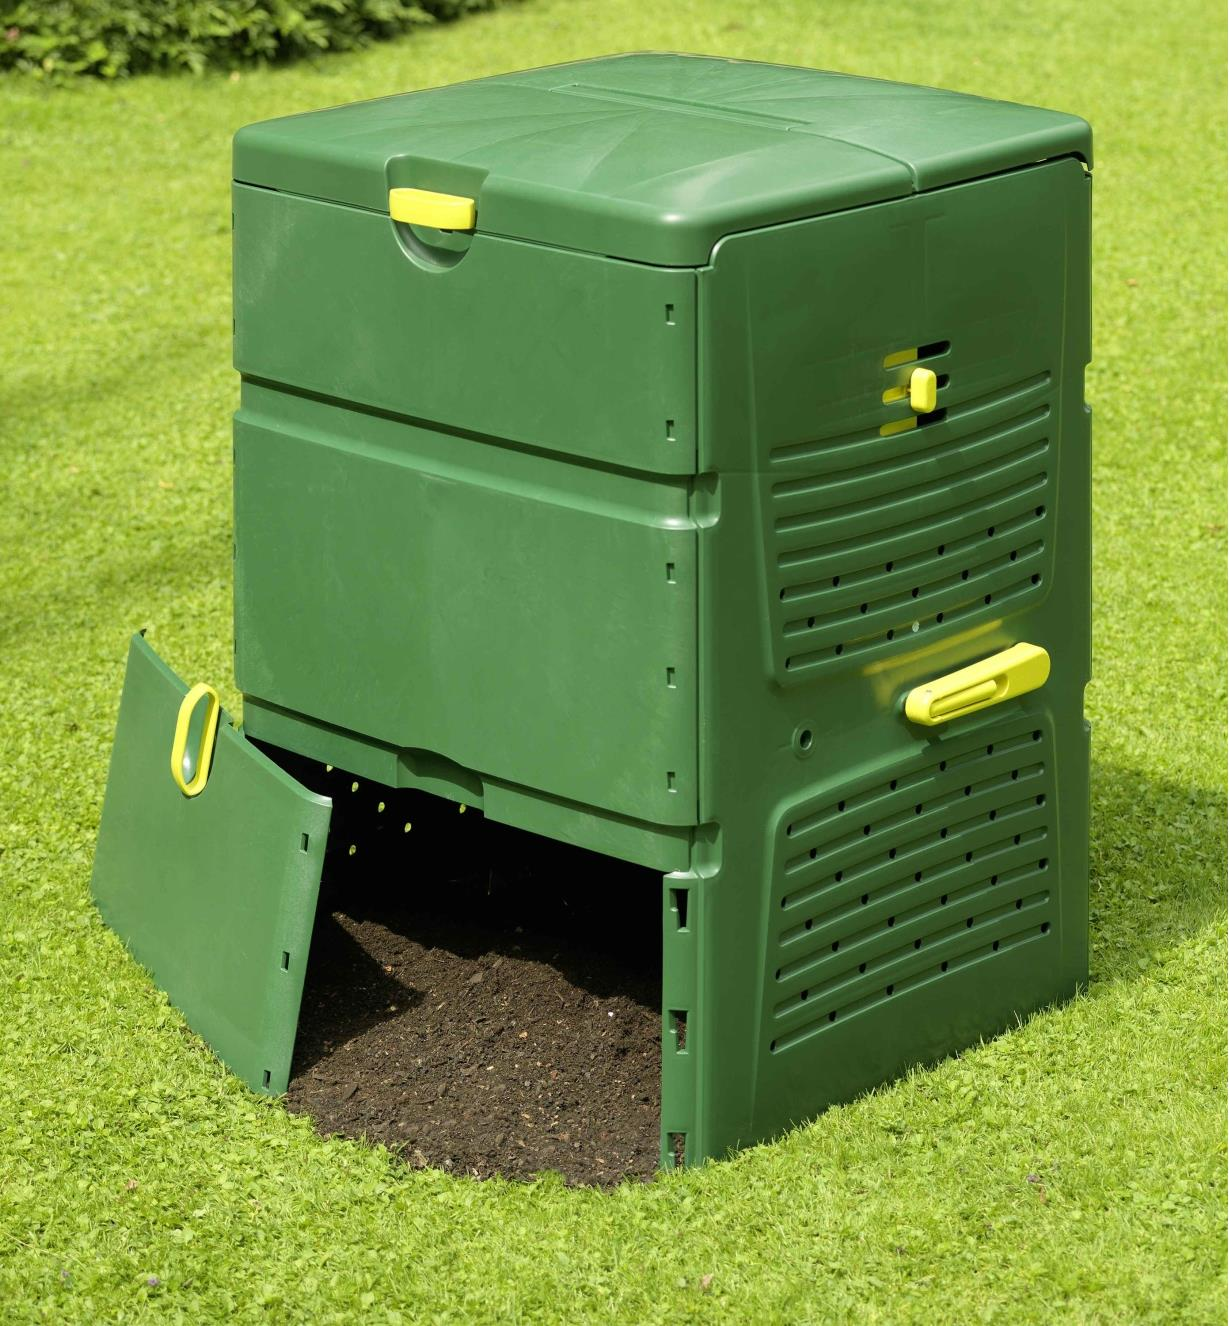 Composter in a garden with the bottom compartment open, releasing finished compost